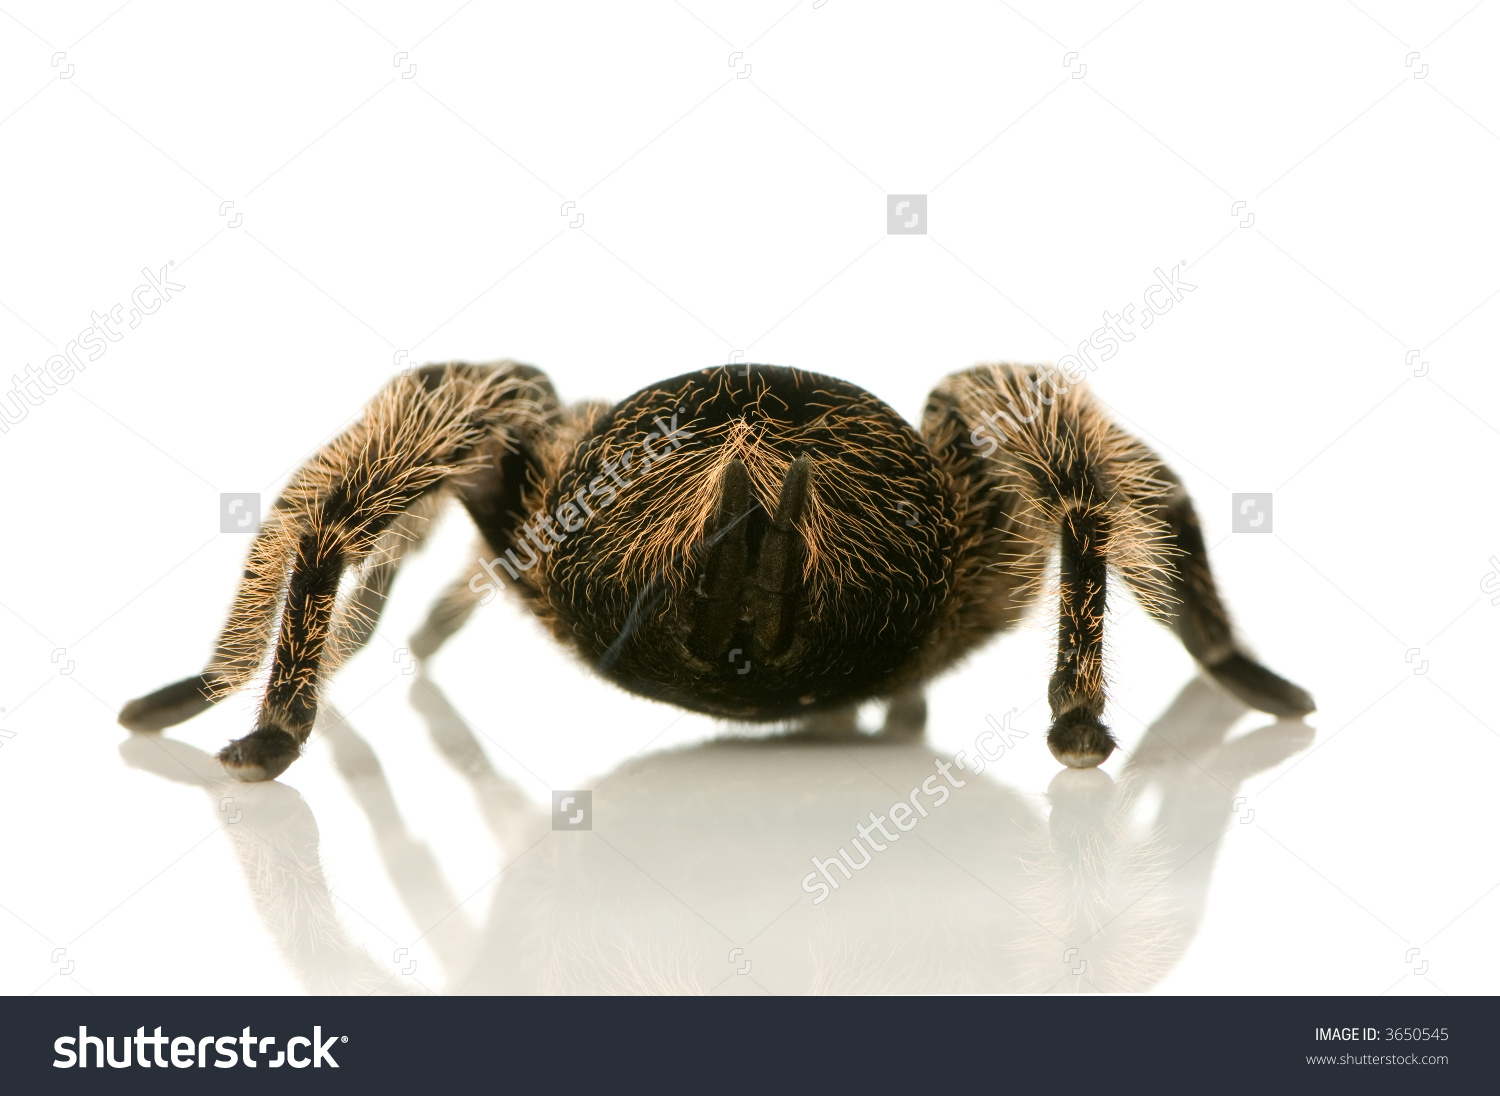 Back Of Zebra Tarantula In Front Of A White Backgroung, We Can See.